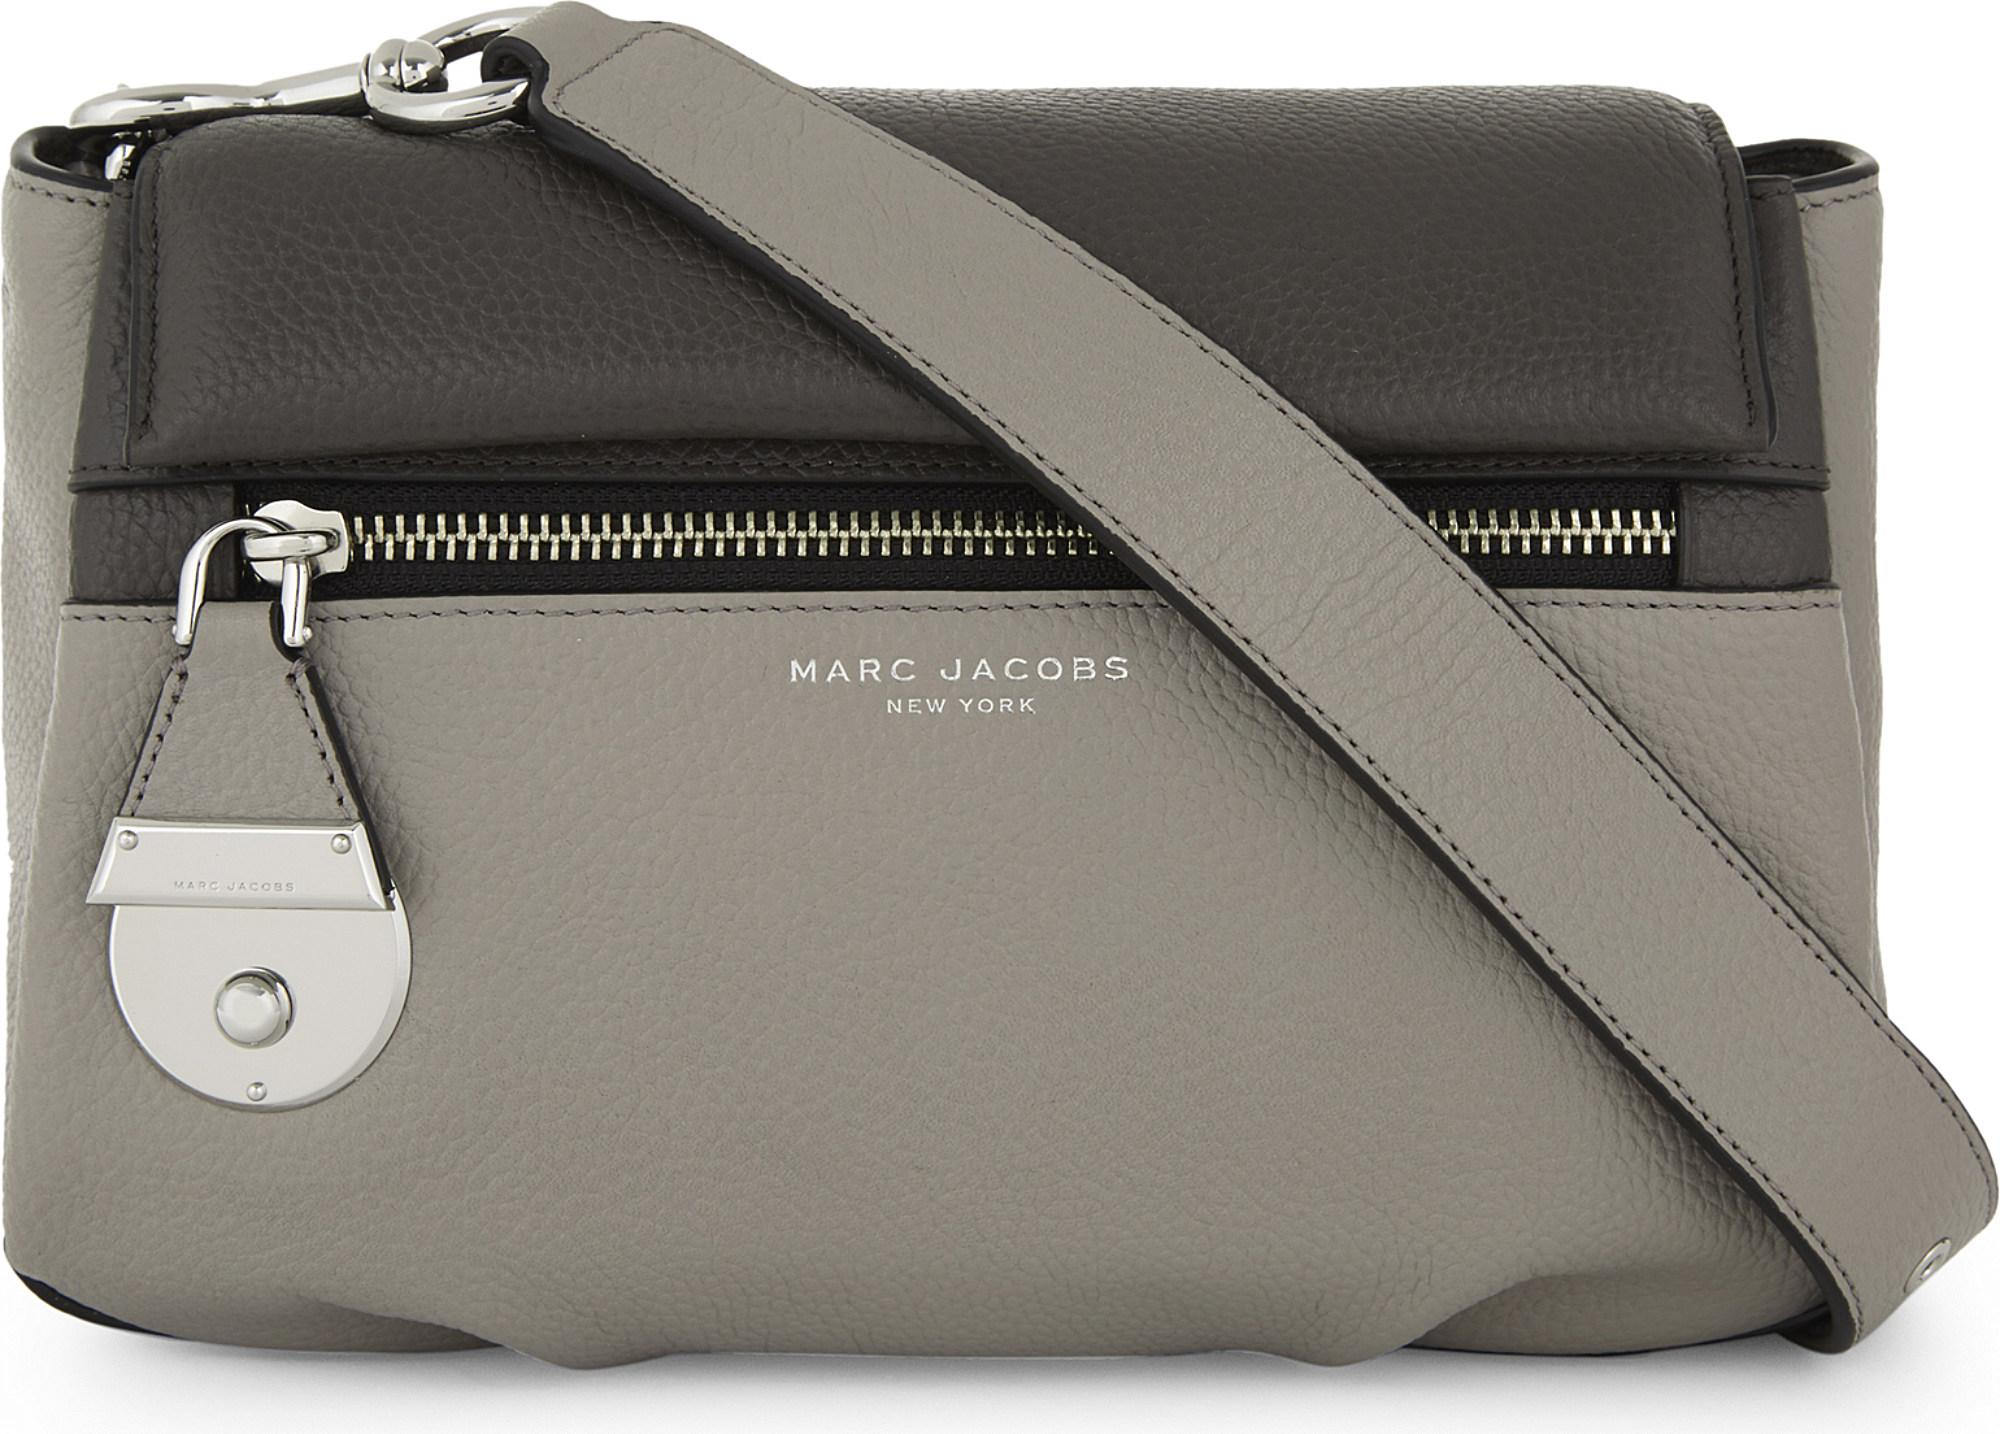 023d5ff76f Marc Jacobs The Standard Mini Leather Shoulder Bag in Gray - Lyst